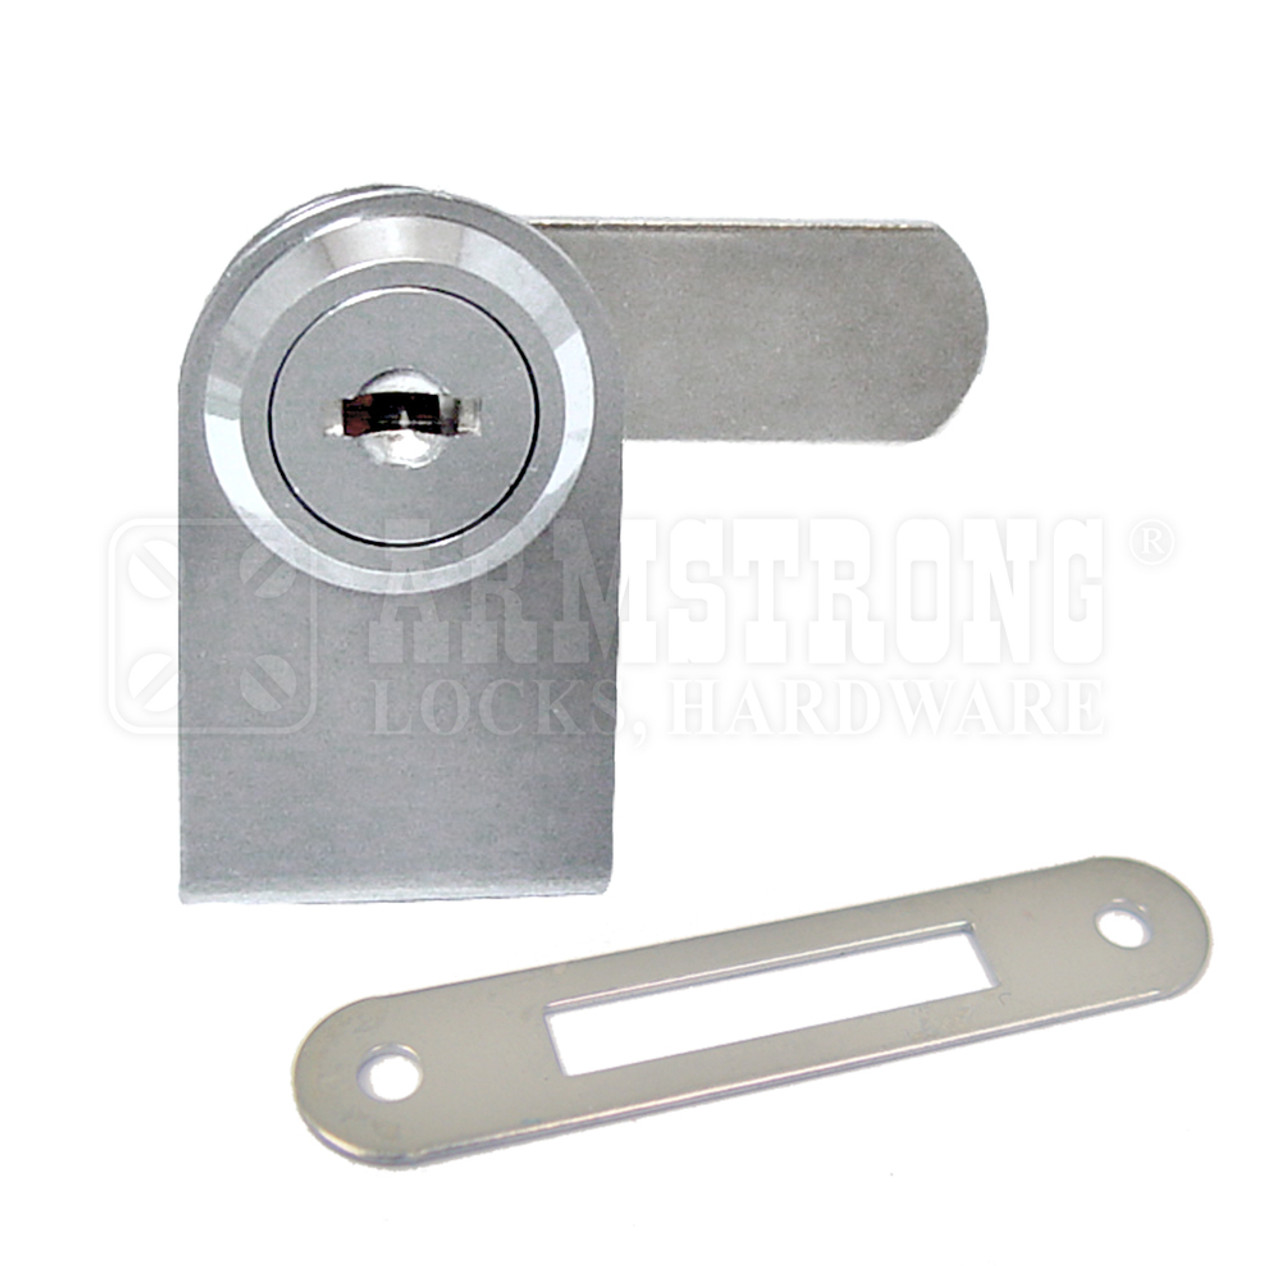 Chrome Swinging Glass Door Lock For single Door, 1/4 thick